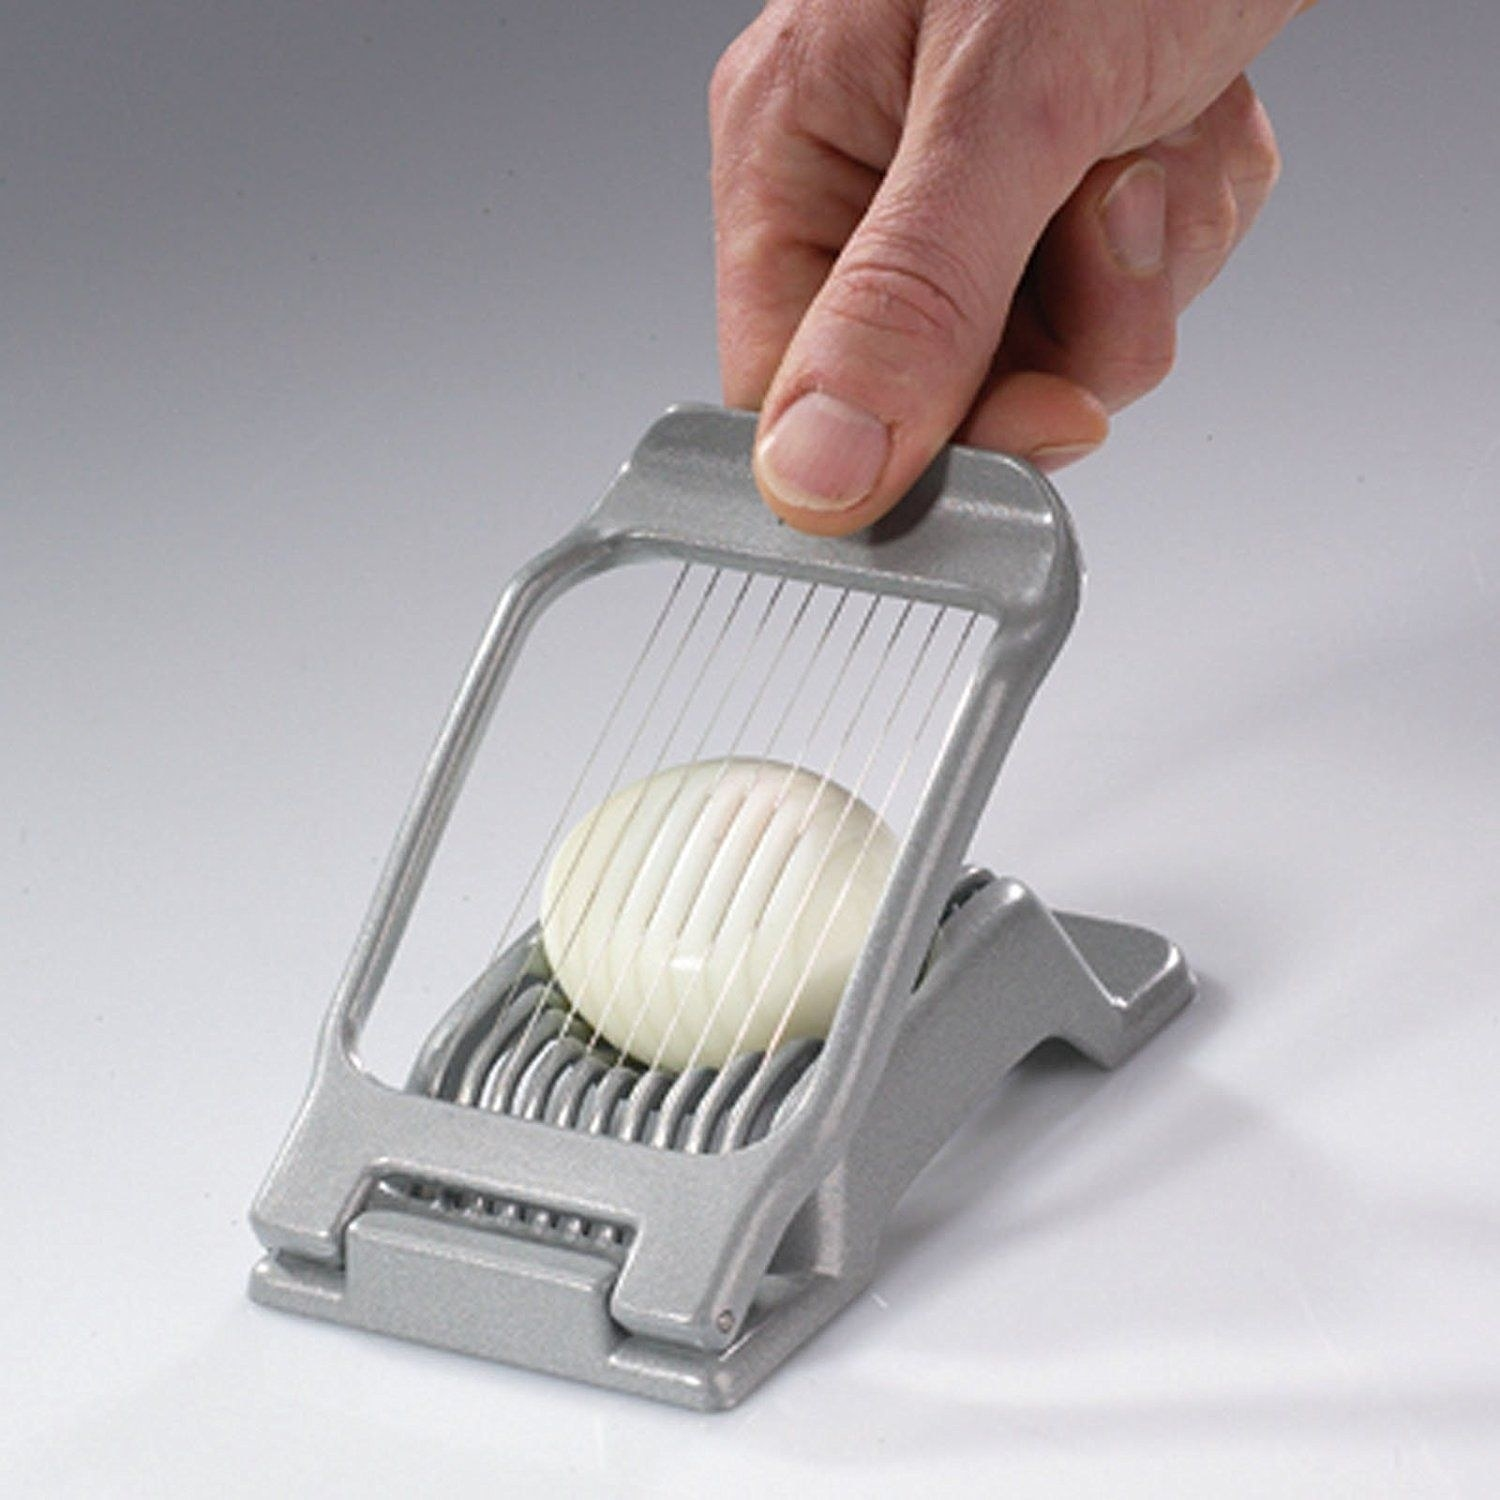 A person presses the egg slicer into a hard boiled egg